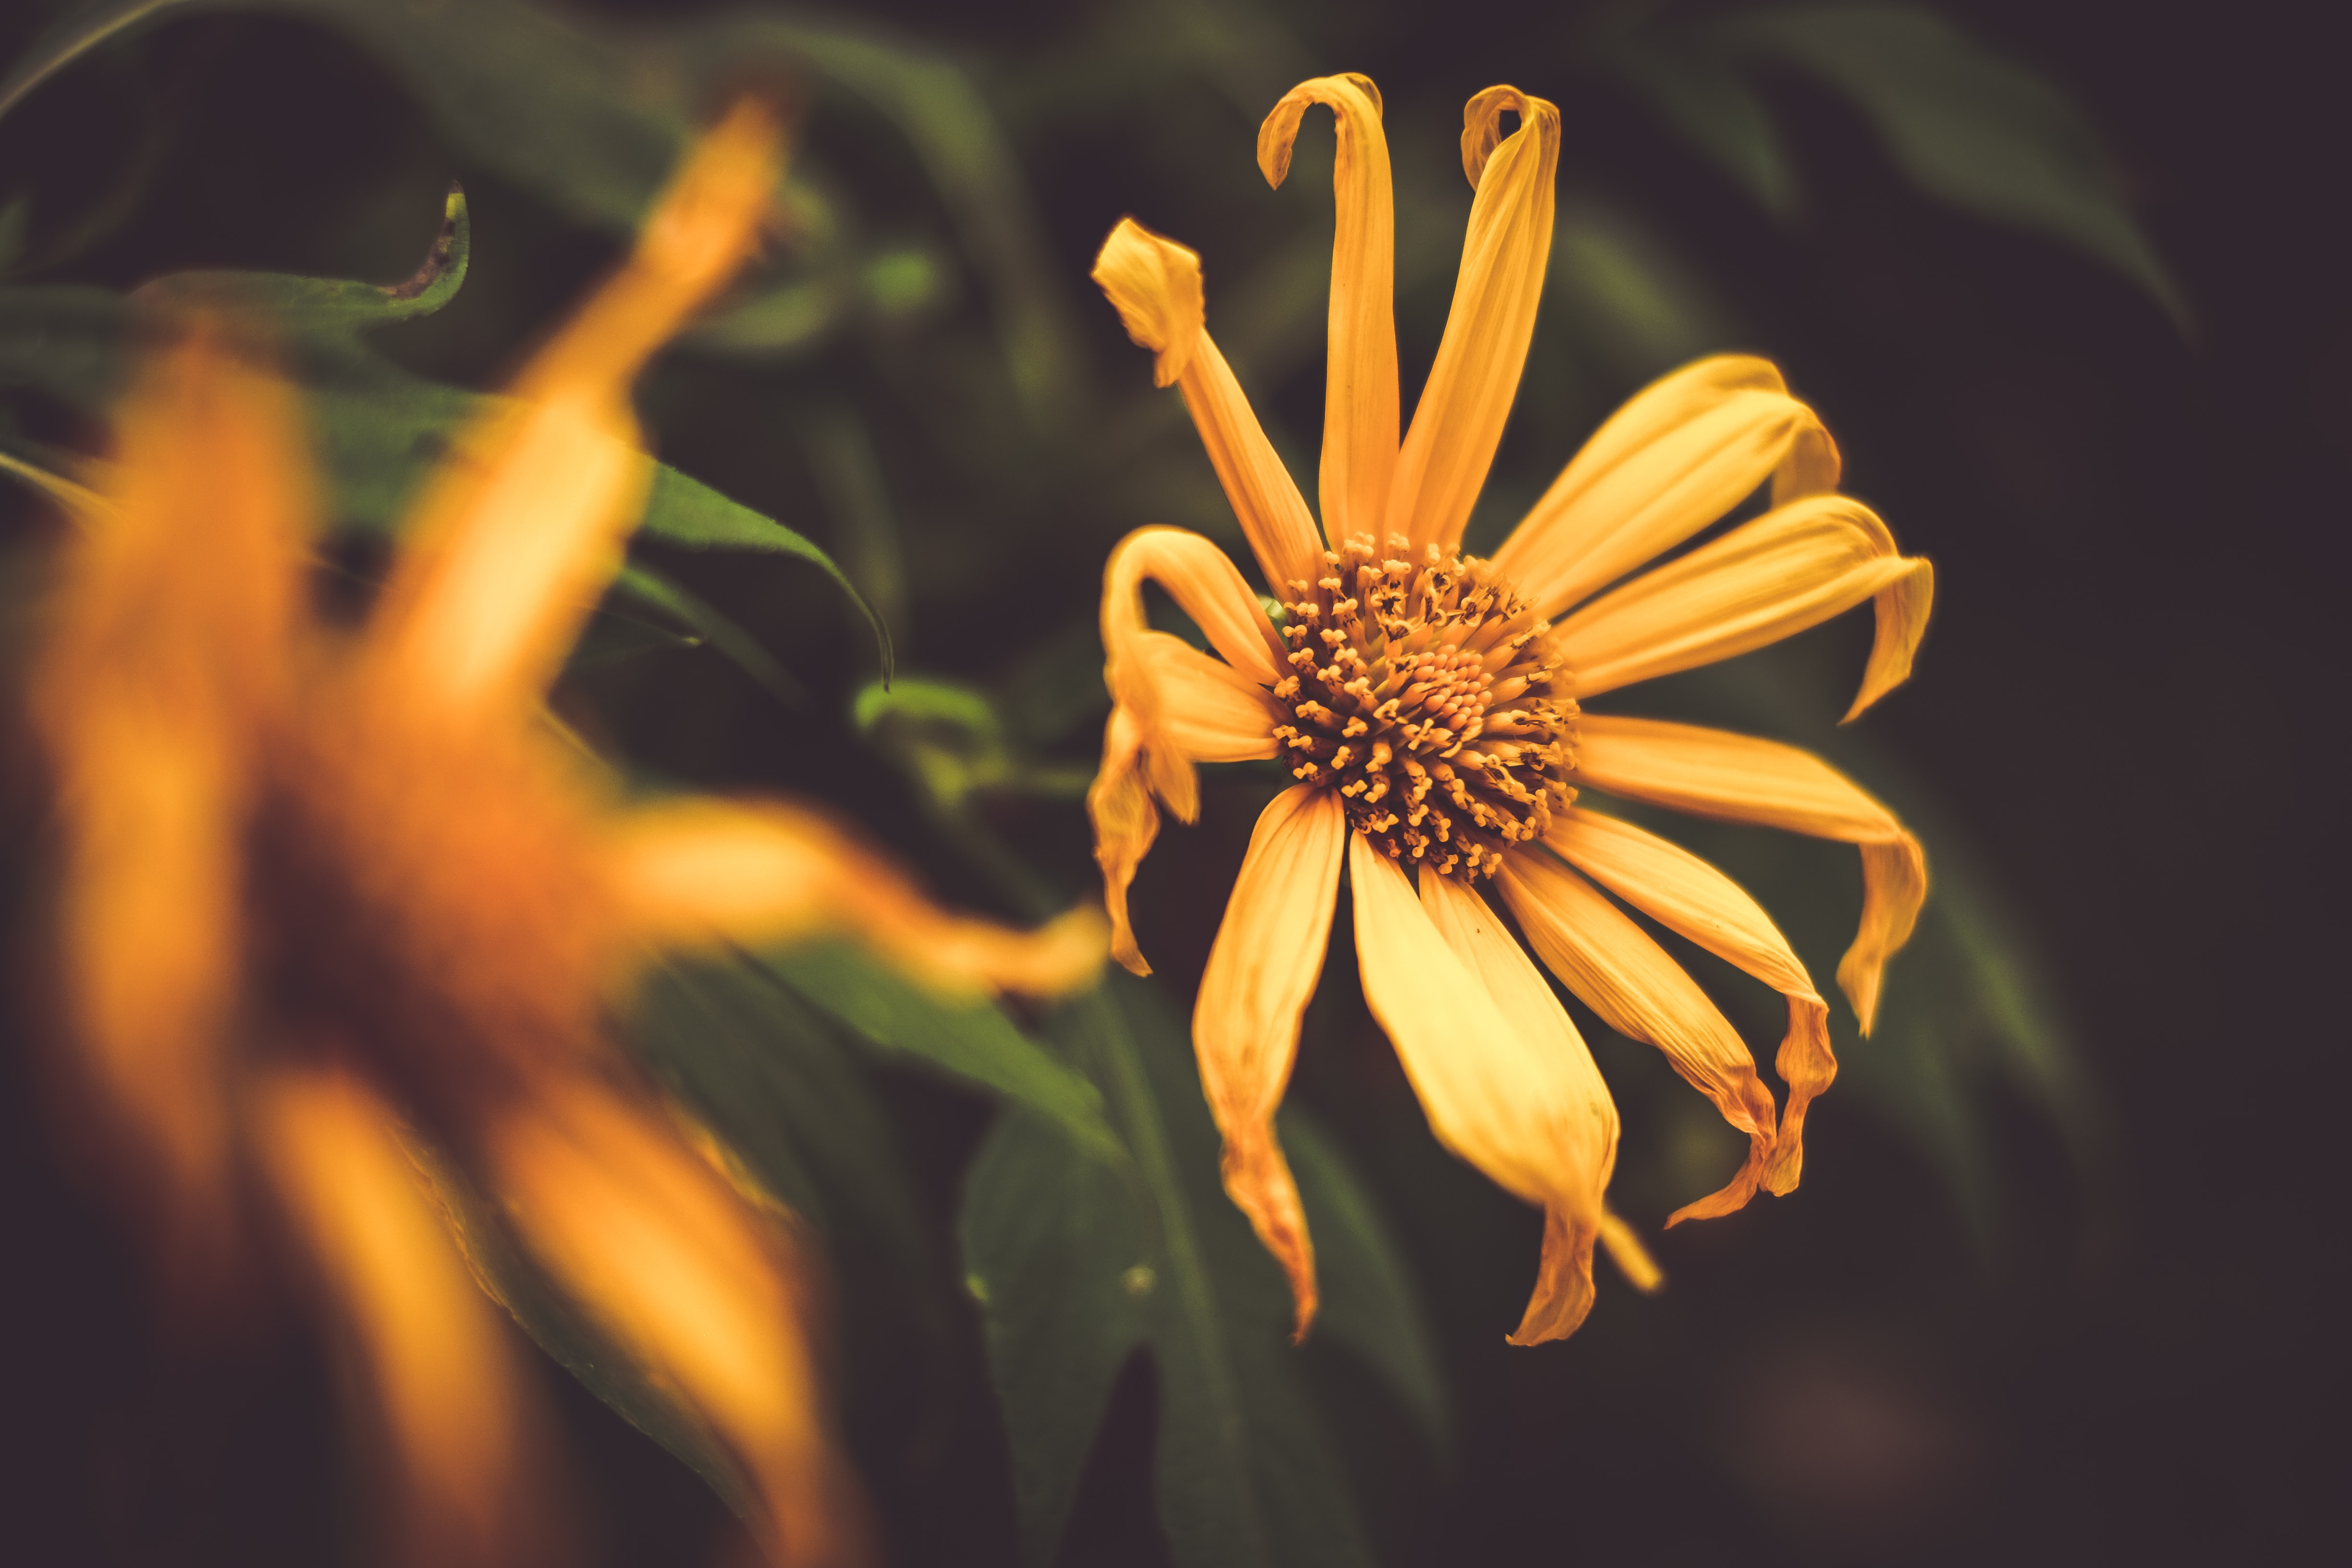 orange petaled flower in selective focus photography